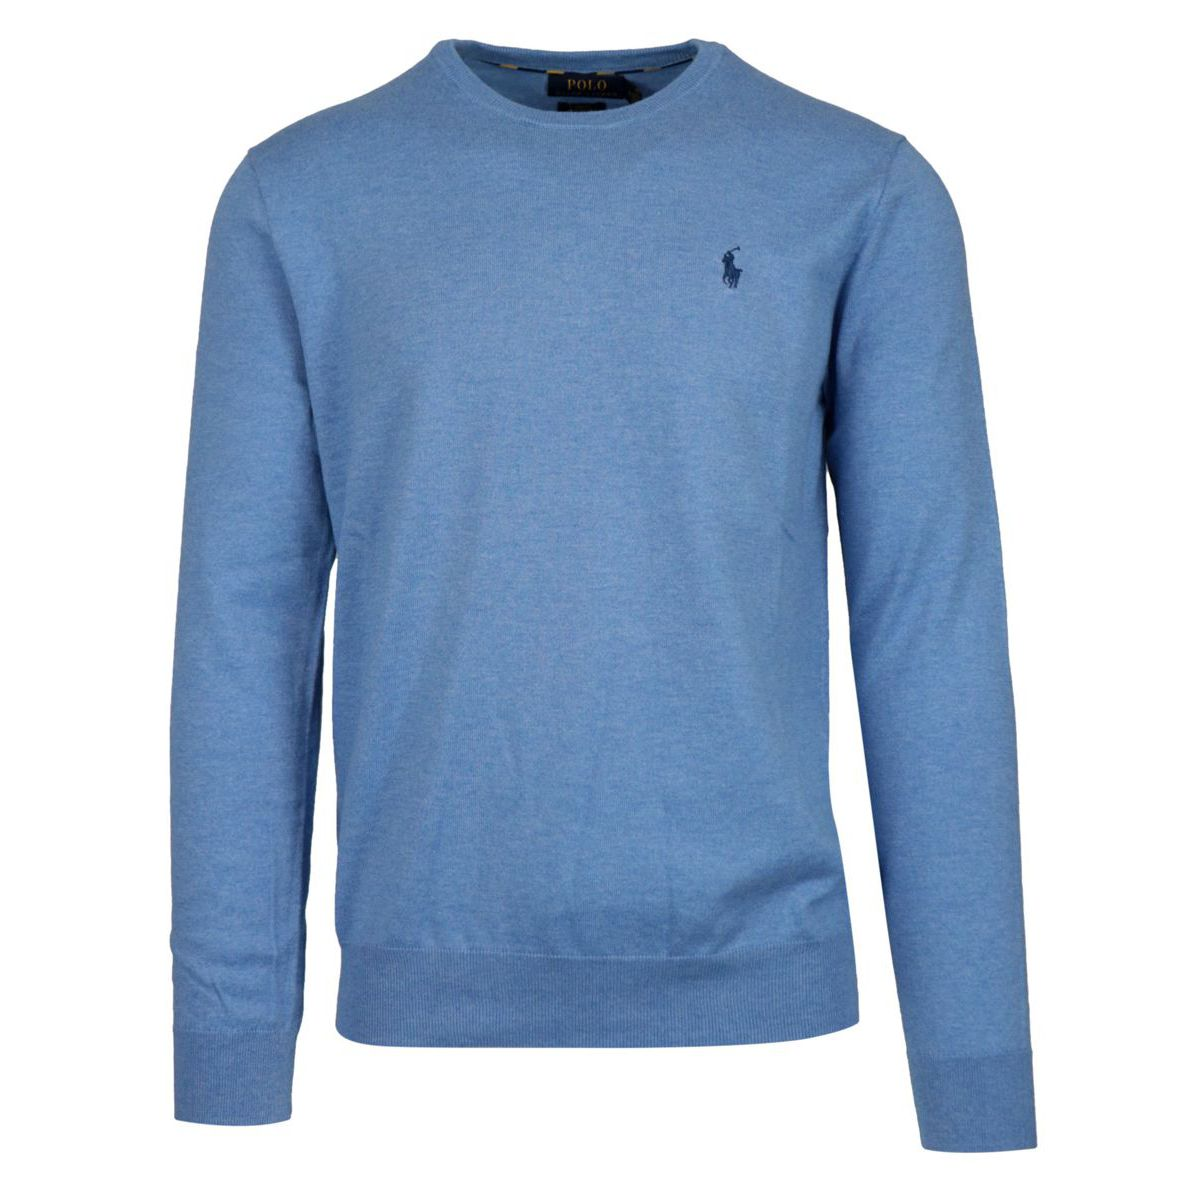 Crew-neck pullover in cotton with logo Light blue Polo Ralph Lauren